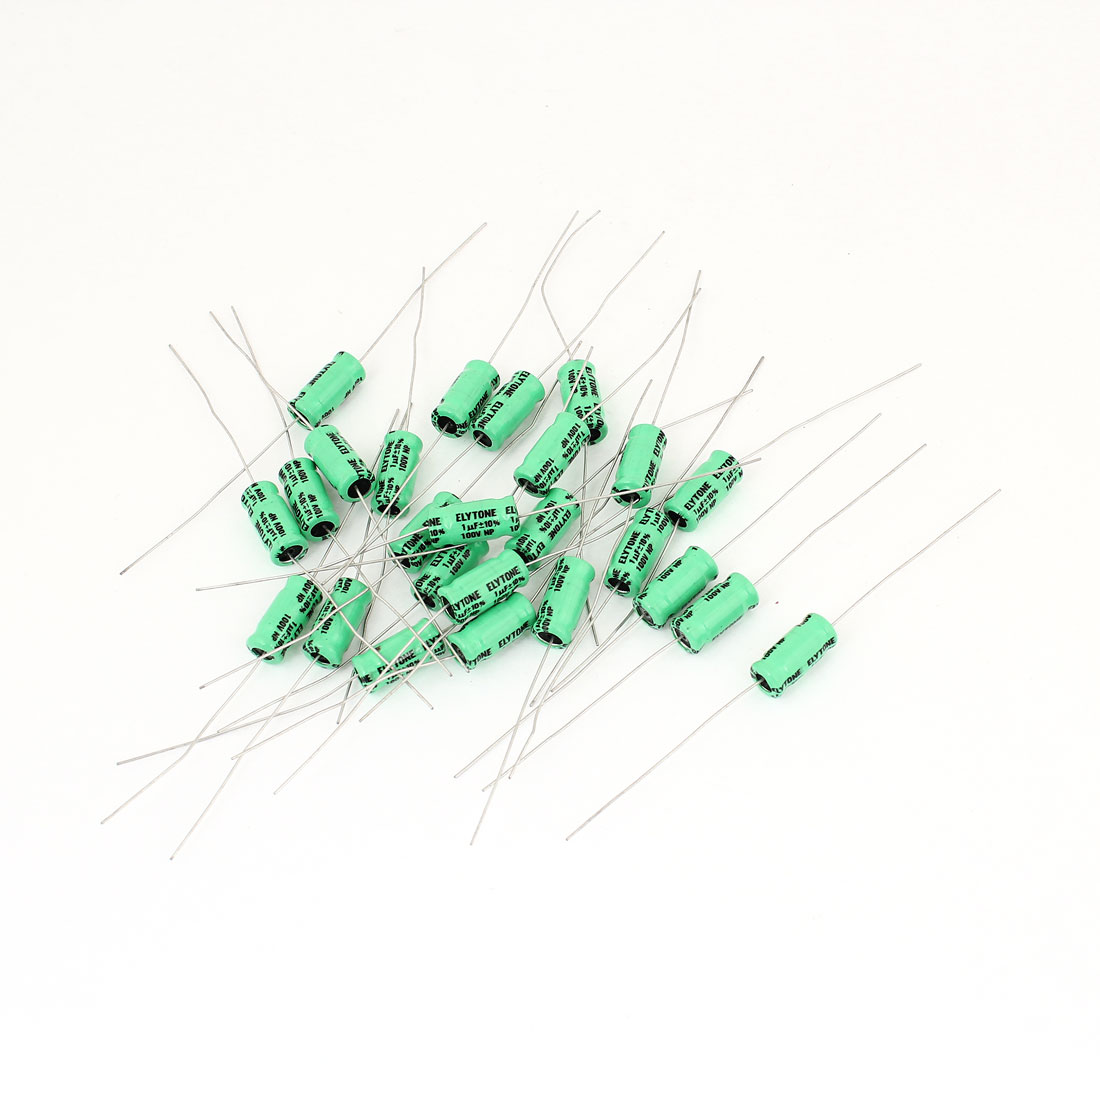 25Pcs 1uF 100V 105C Radial Electrolytic Capacitor 8mmx17mm Green